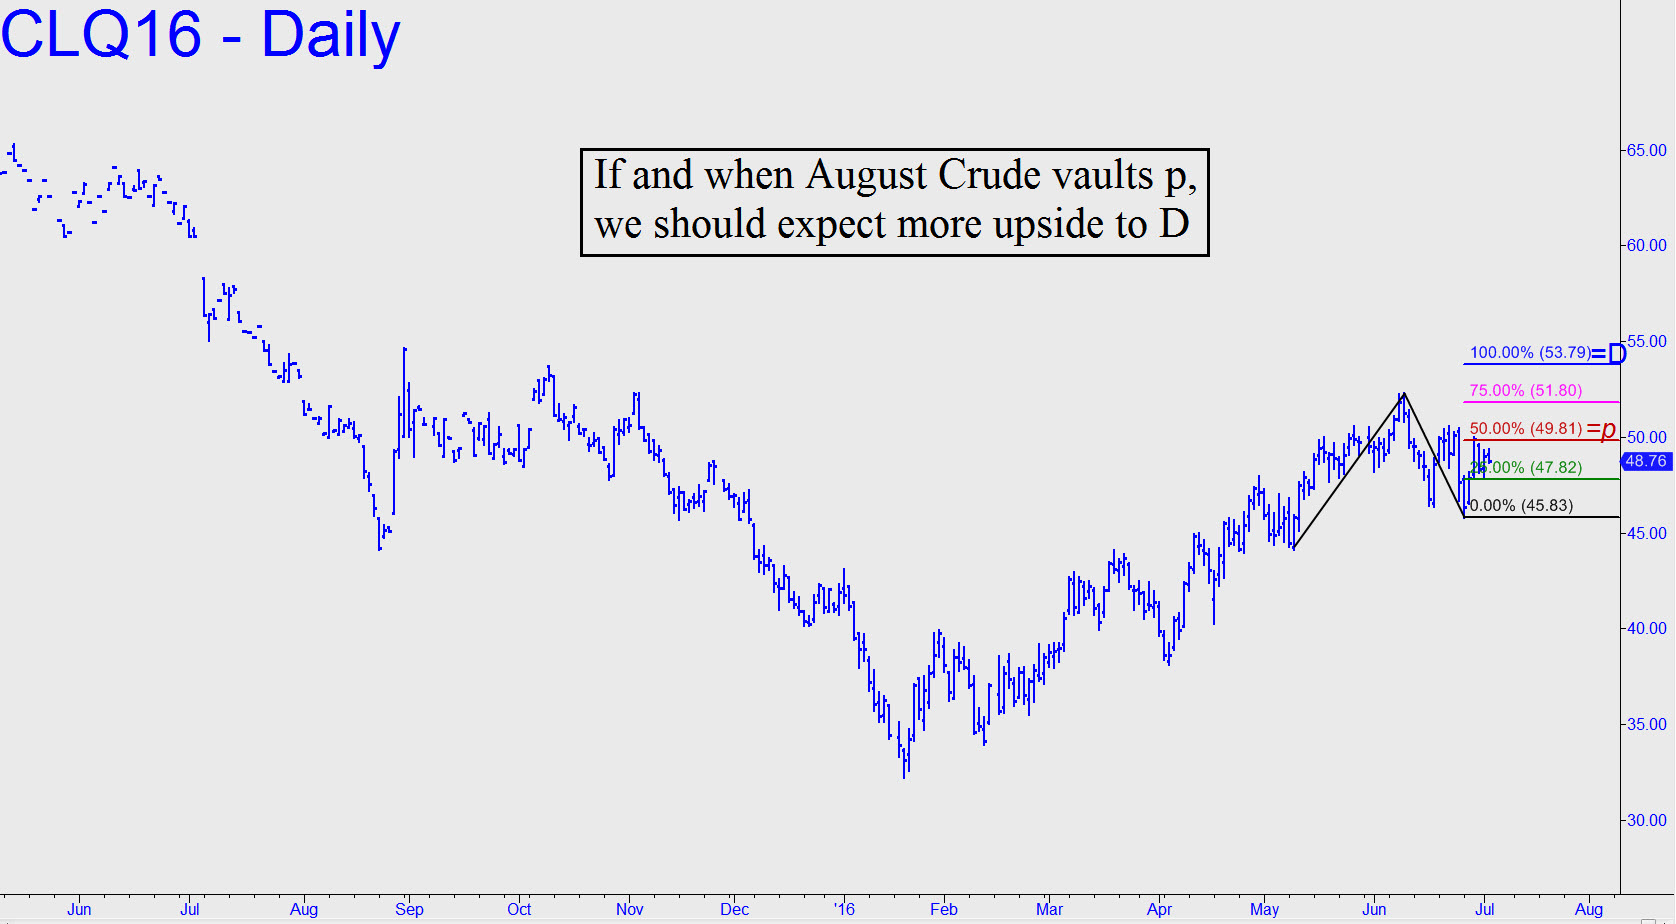 http://www.rickackerman.com/wp-content/uploads/2016/07/If-August-Crude-vaults-p.jpg